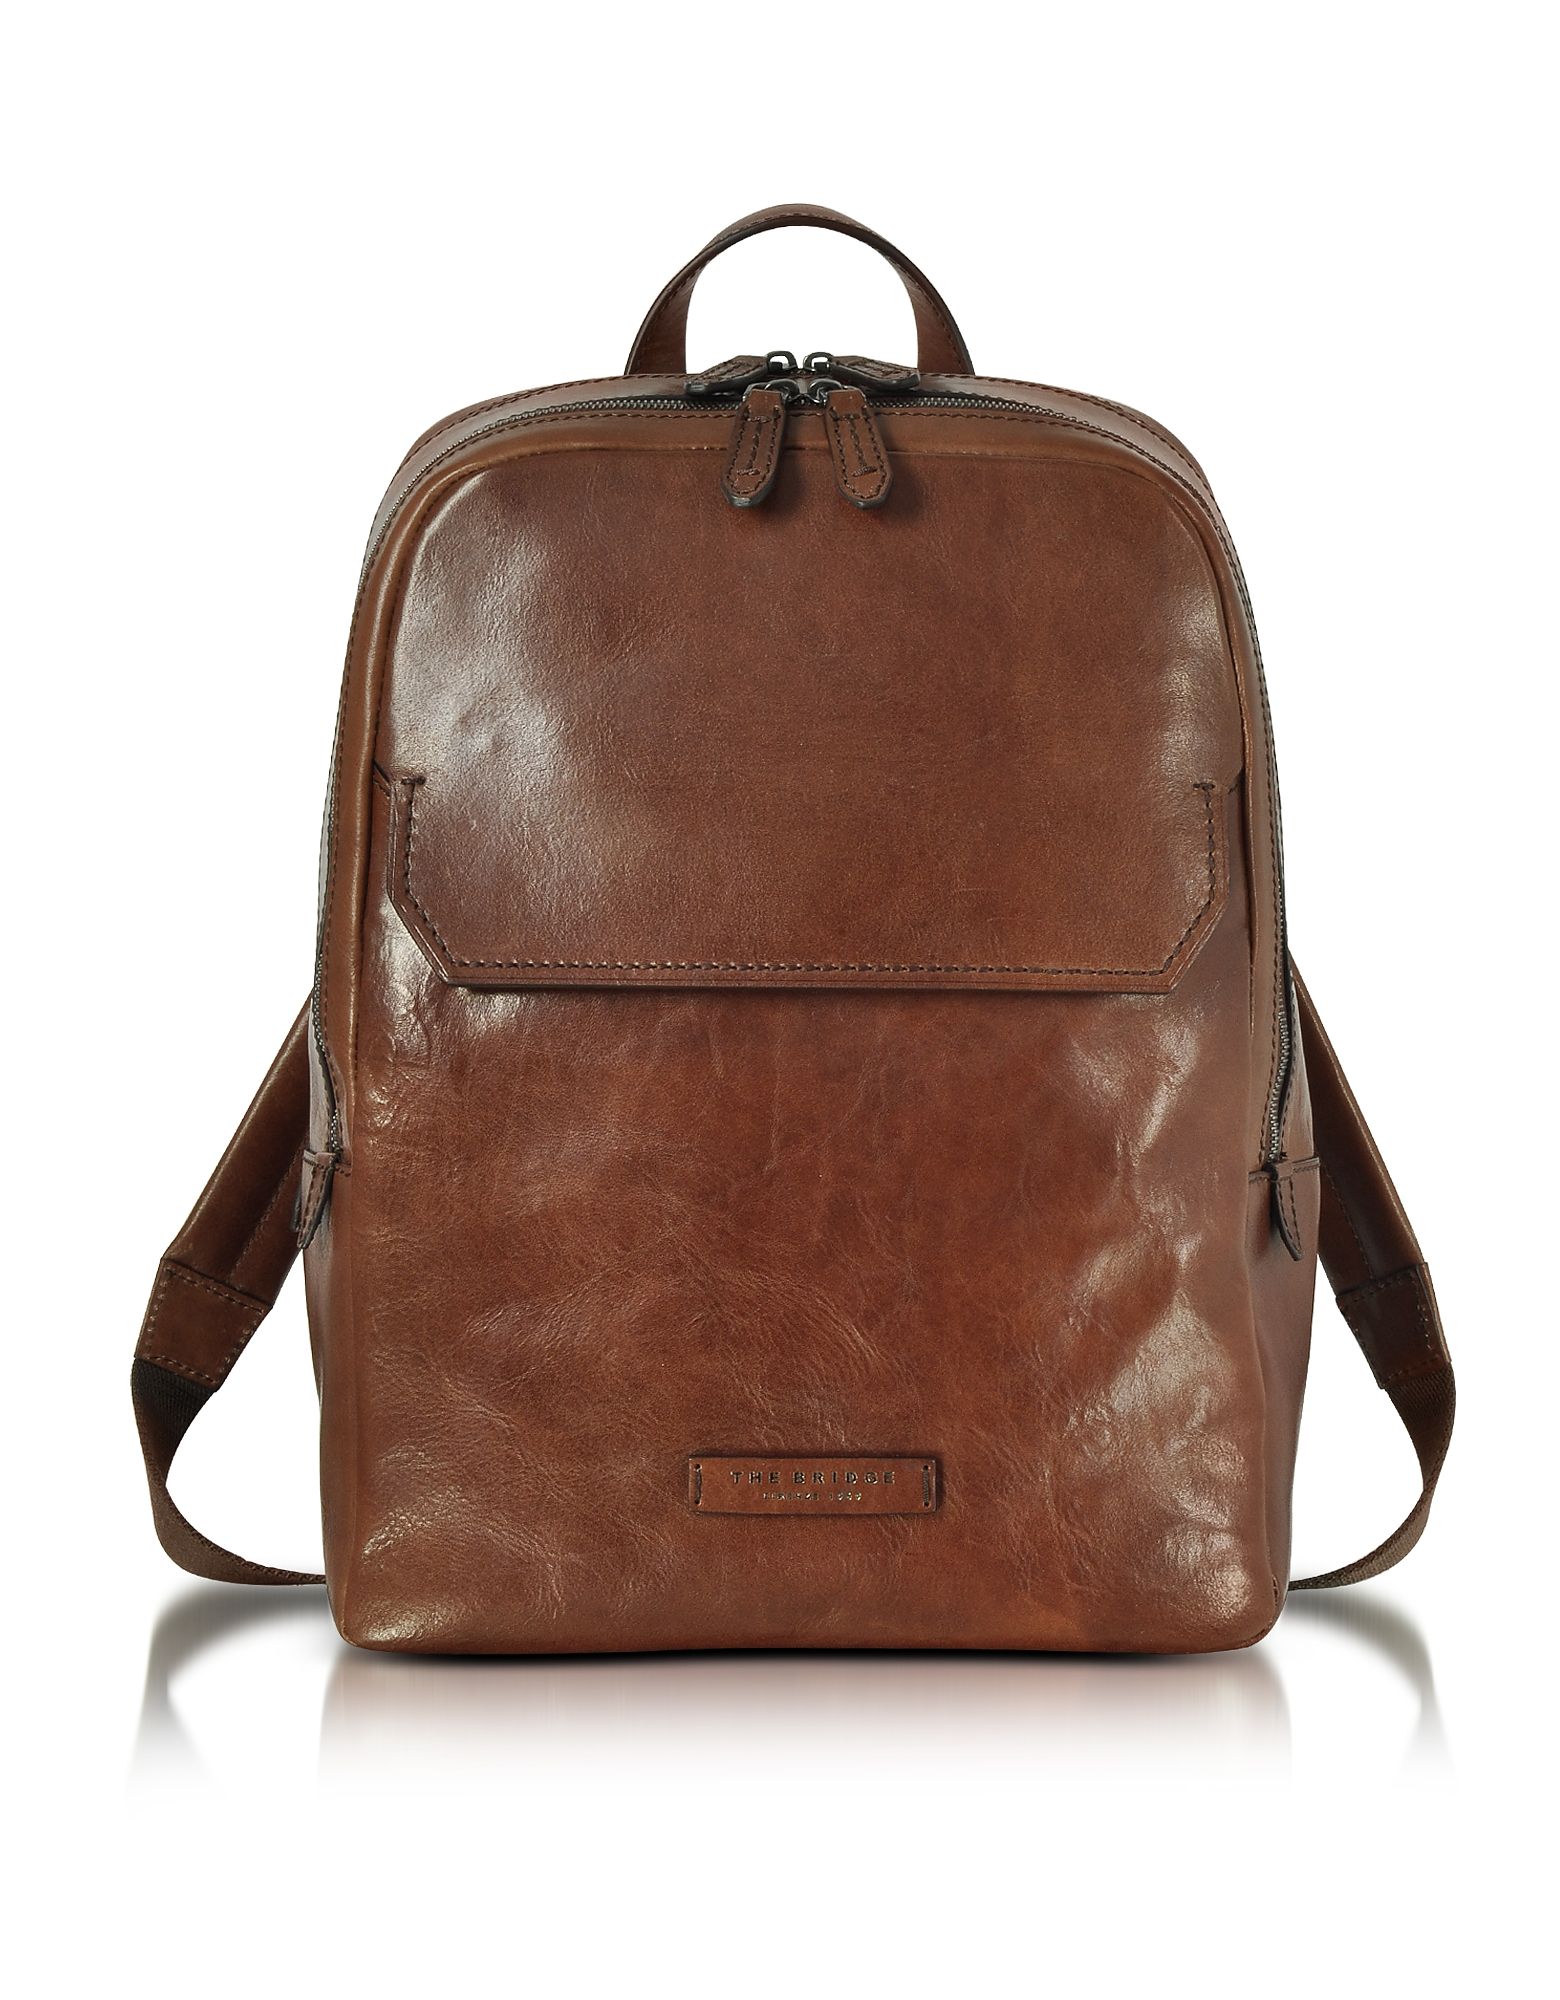 Image of The Bridge Designer Backpacks, Marrone Leather Men's Backpack